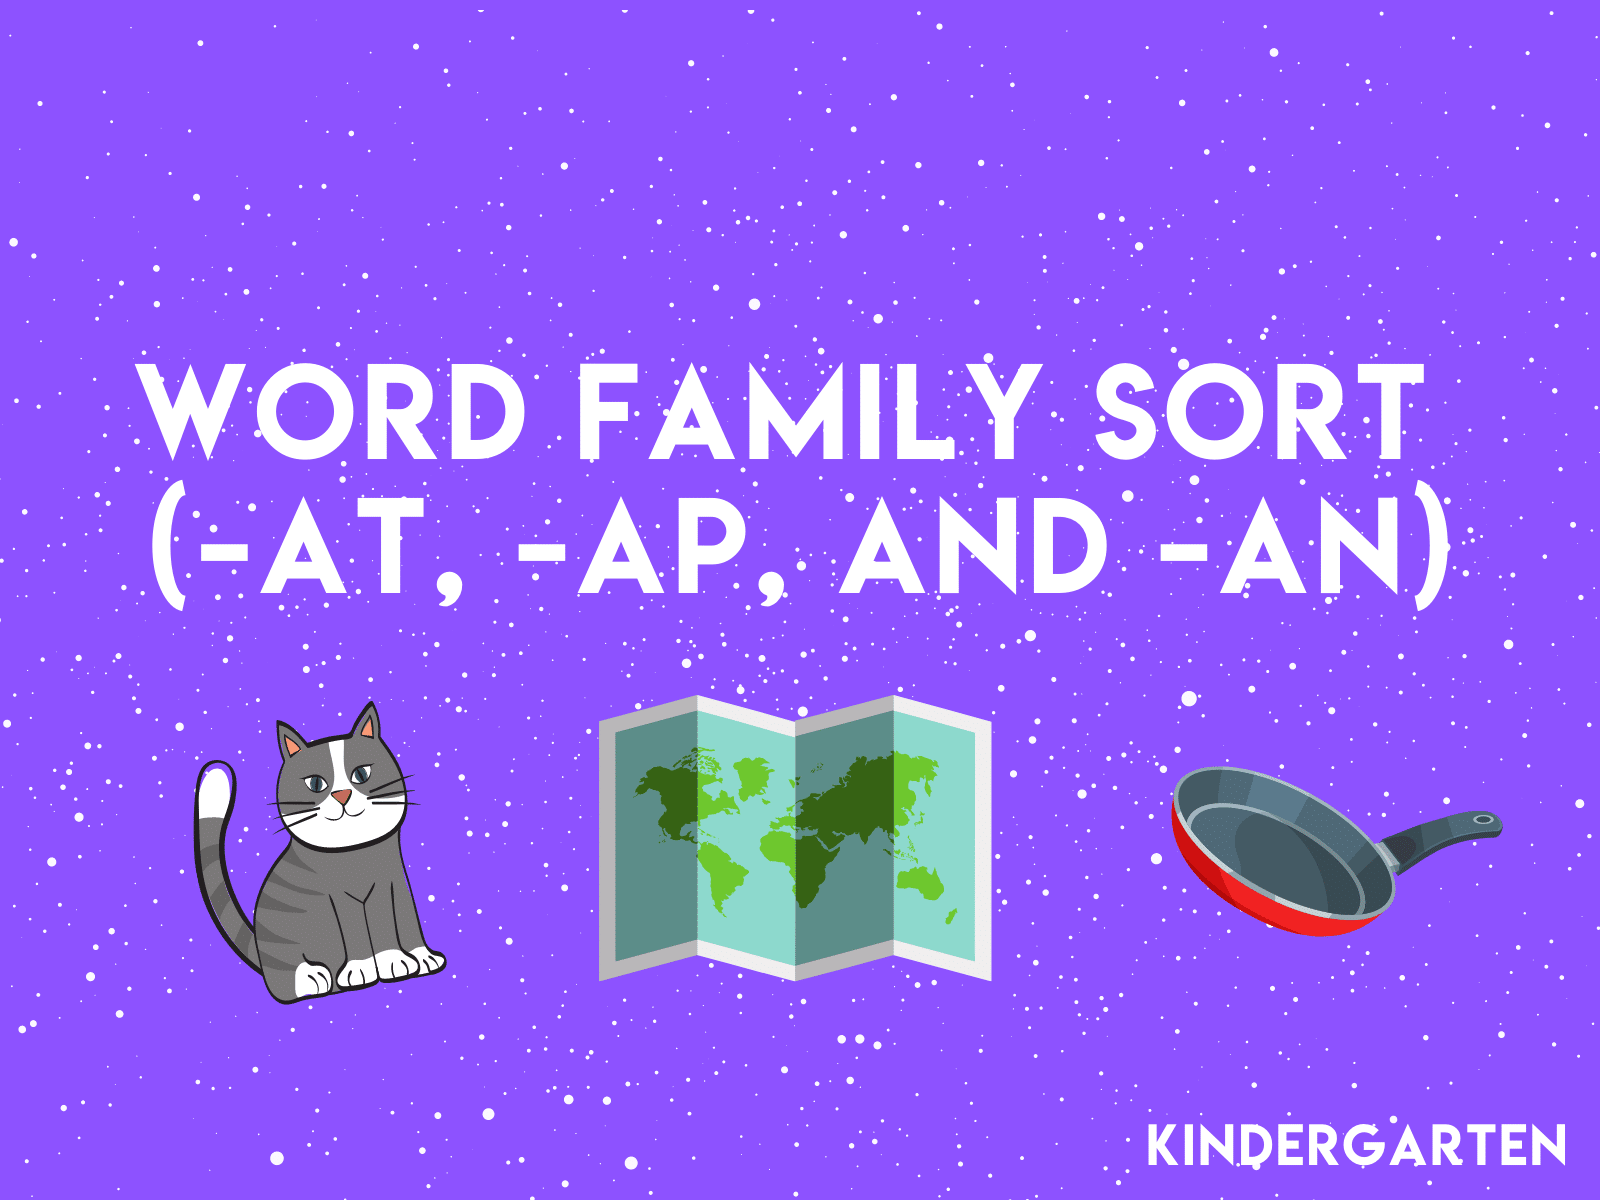 Word Family Sort | Free kindergarten reading resource to learn -at, -ap, and -an sounds